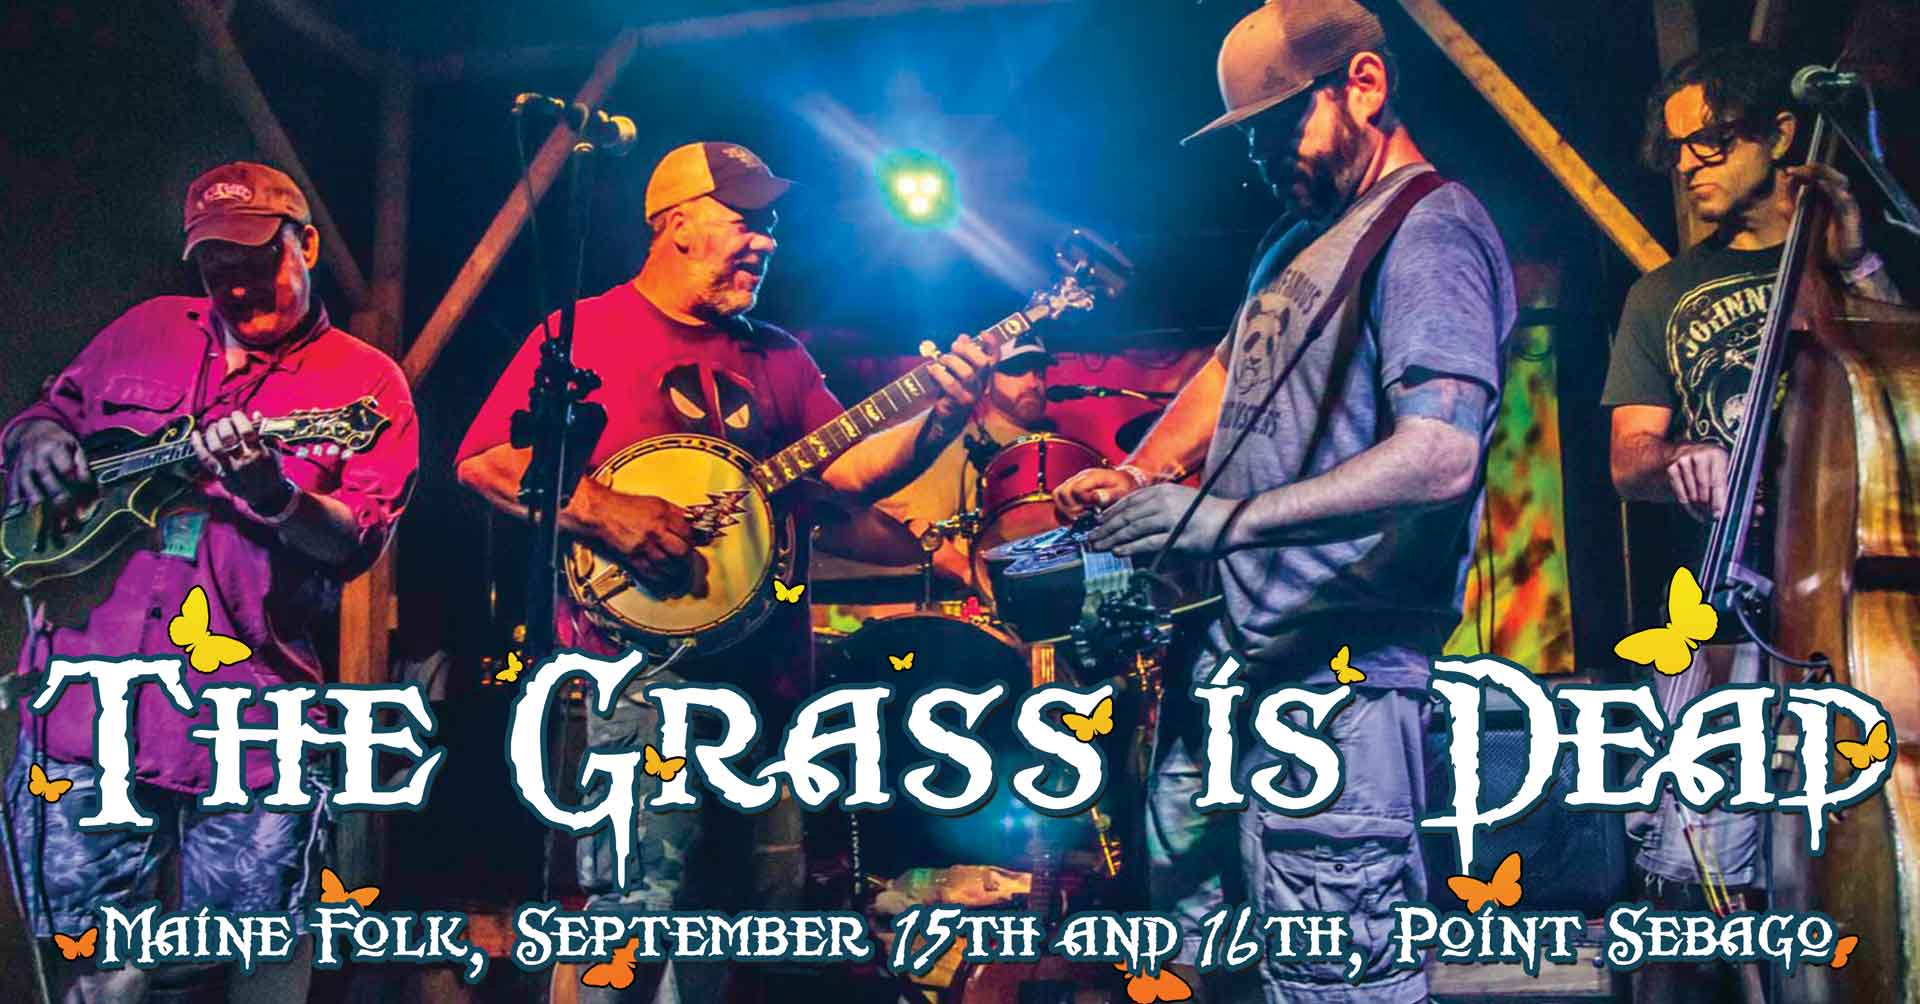 The Grass is Dead - Grateful Dead Bluegrass Band performing live at Point Sebago on September 16th.